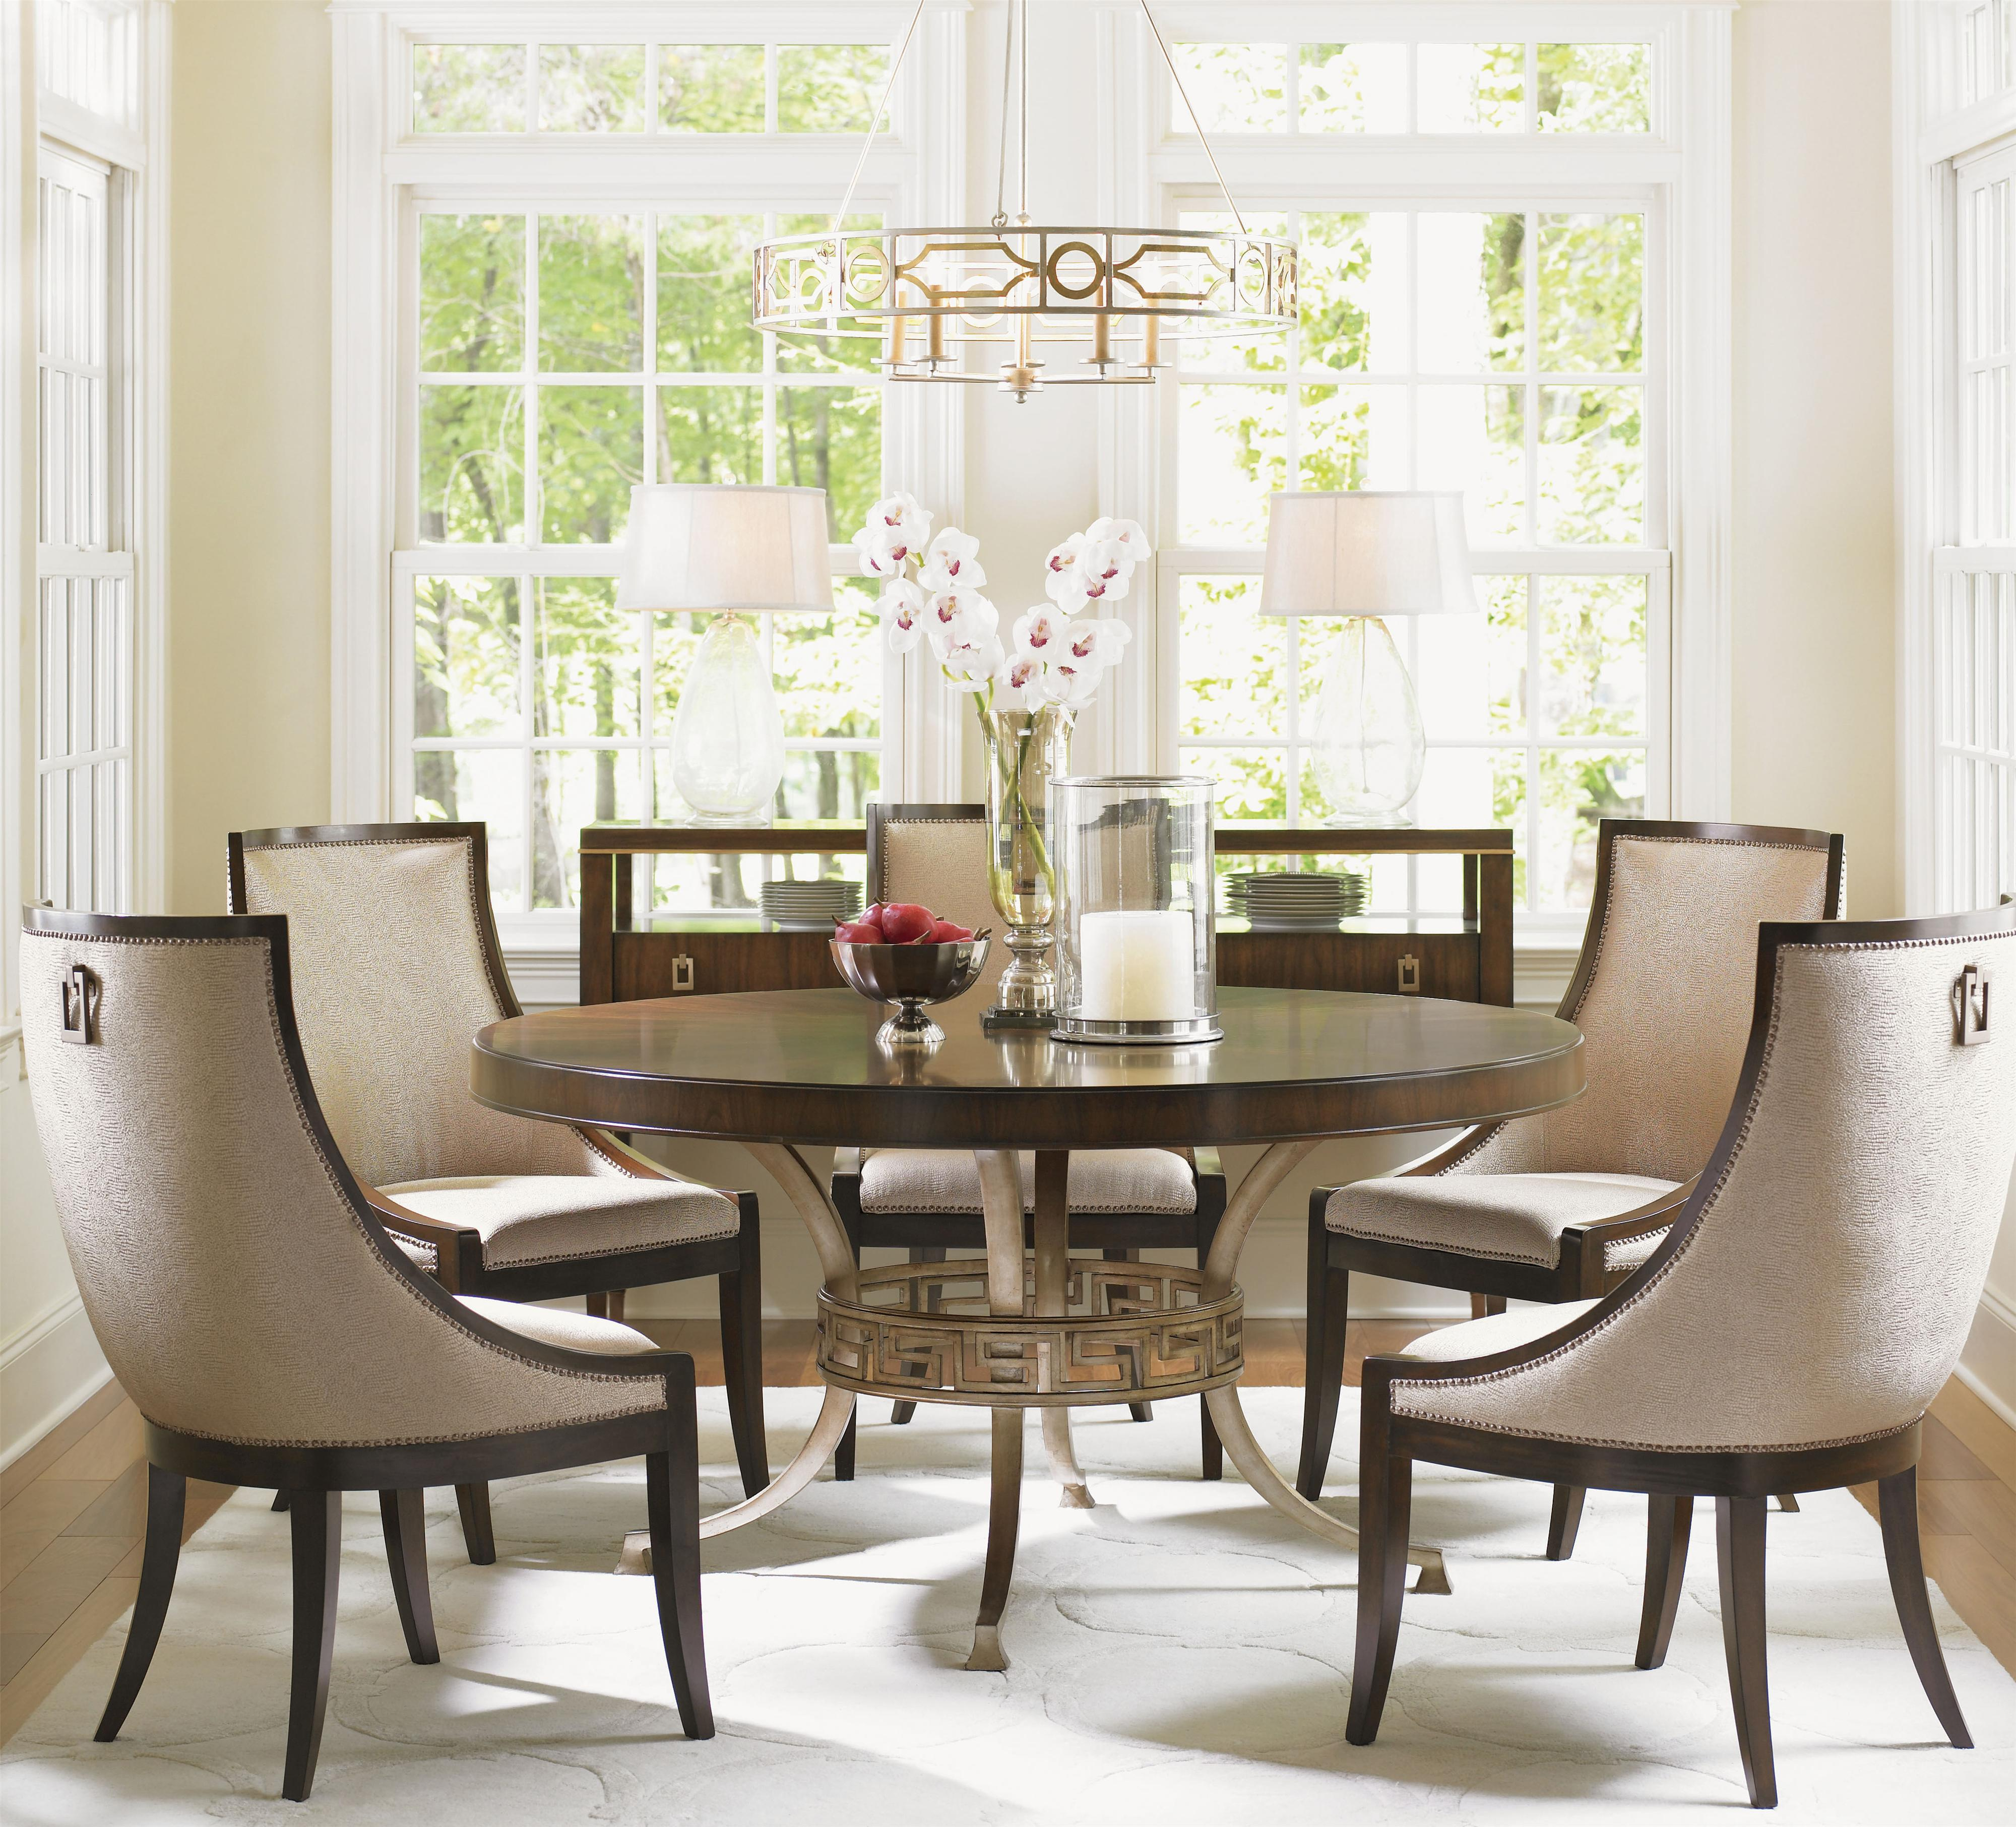 Tower Place 6 Piece Dining Set by Lexington at Baer's Furniture